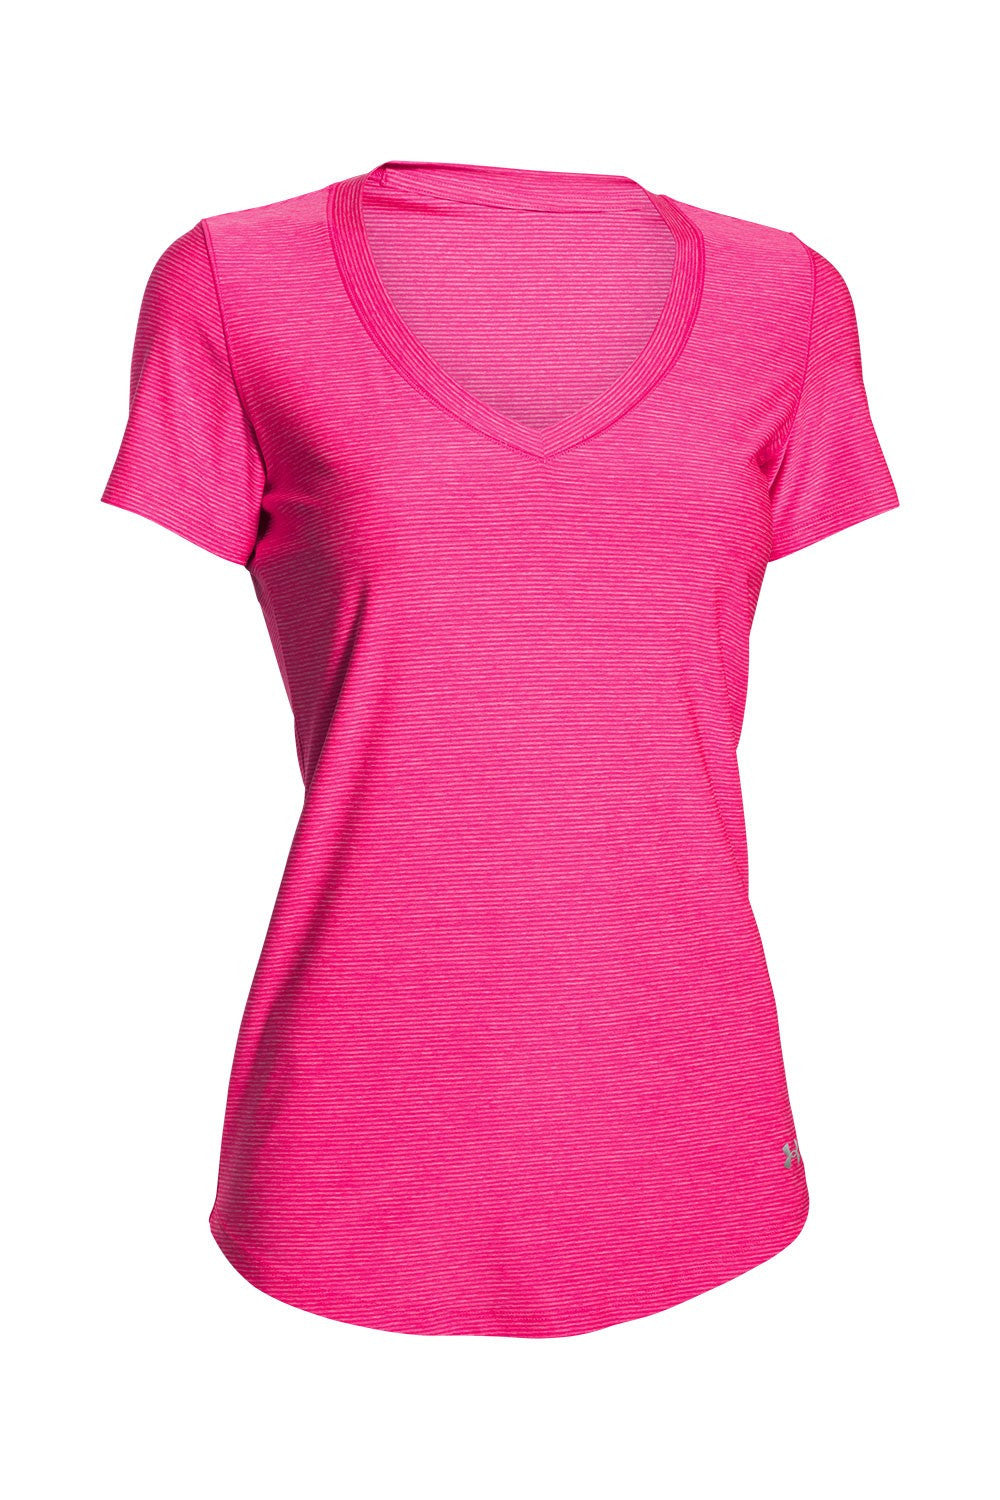 Under Armour Women's Perfect Pace T Rebel Pink 1254026-652